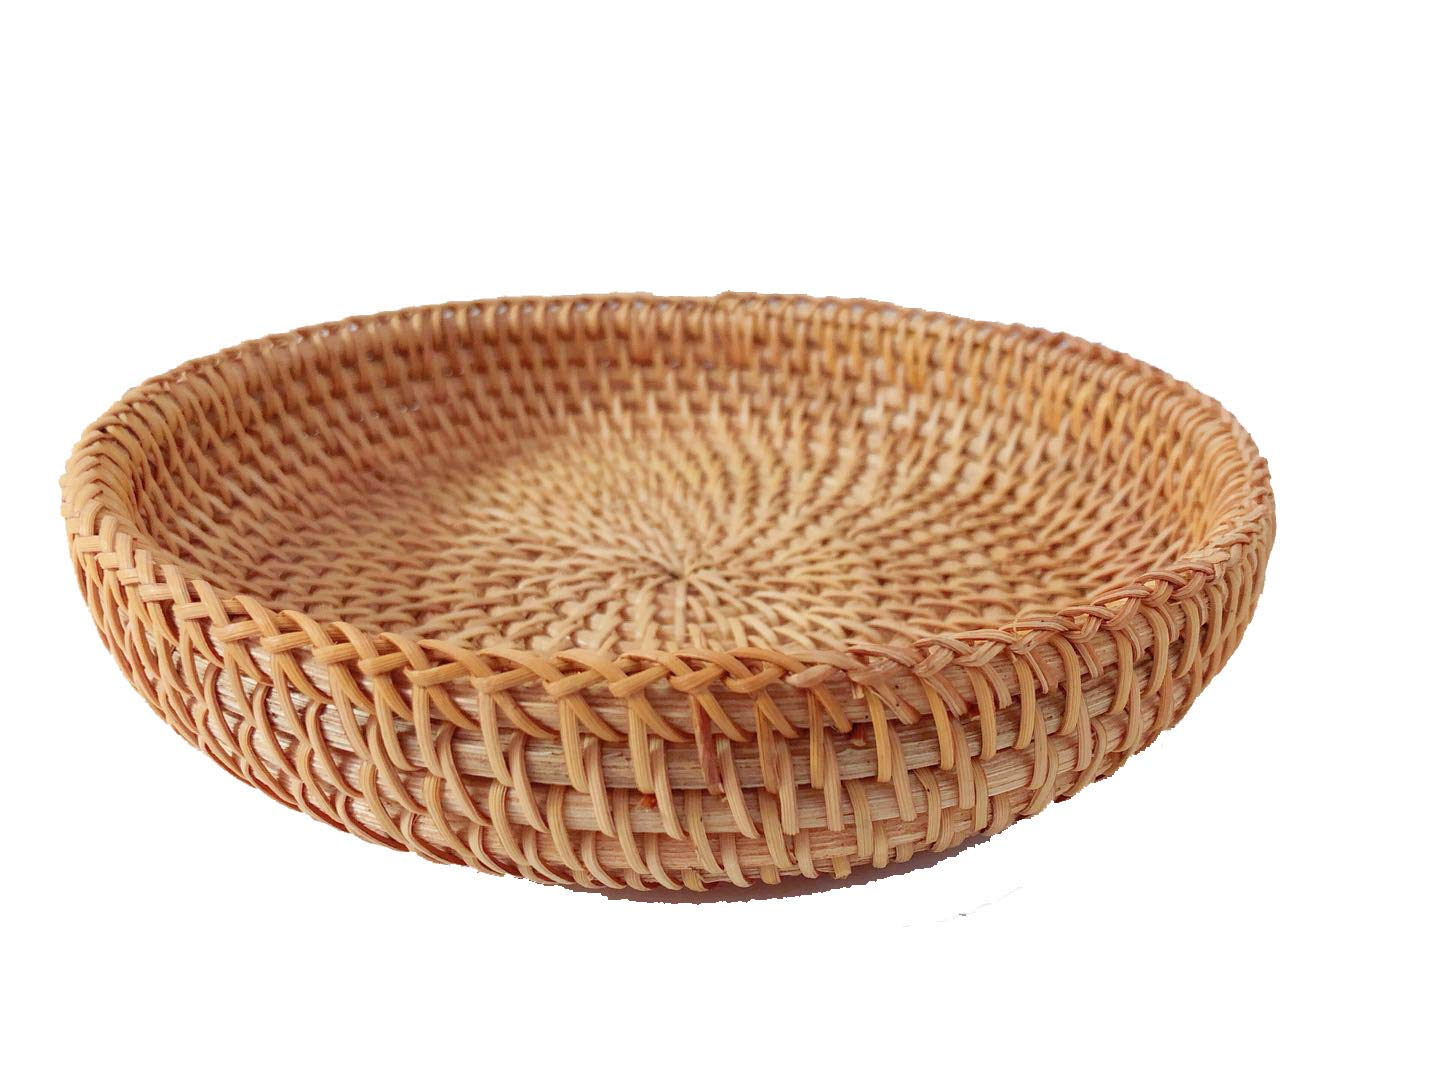 Rattan Basket Dried Fruit Basket Woven Basket Basket For Gifts Fruit Baskets Wicker Picnic Basket Wicker Basket Candy Basket 2019 Organizer Shallow Basket Gift Baskets For Women (2PCs wicker basekt) by TIMESFRIEND (Image #1)